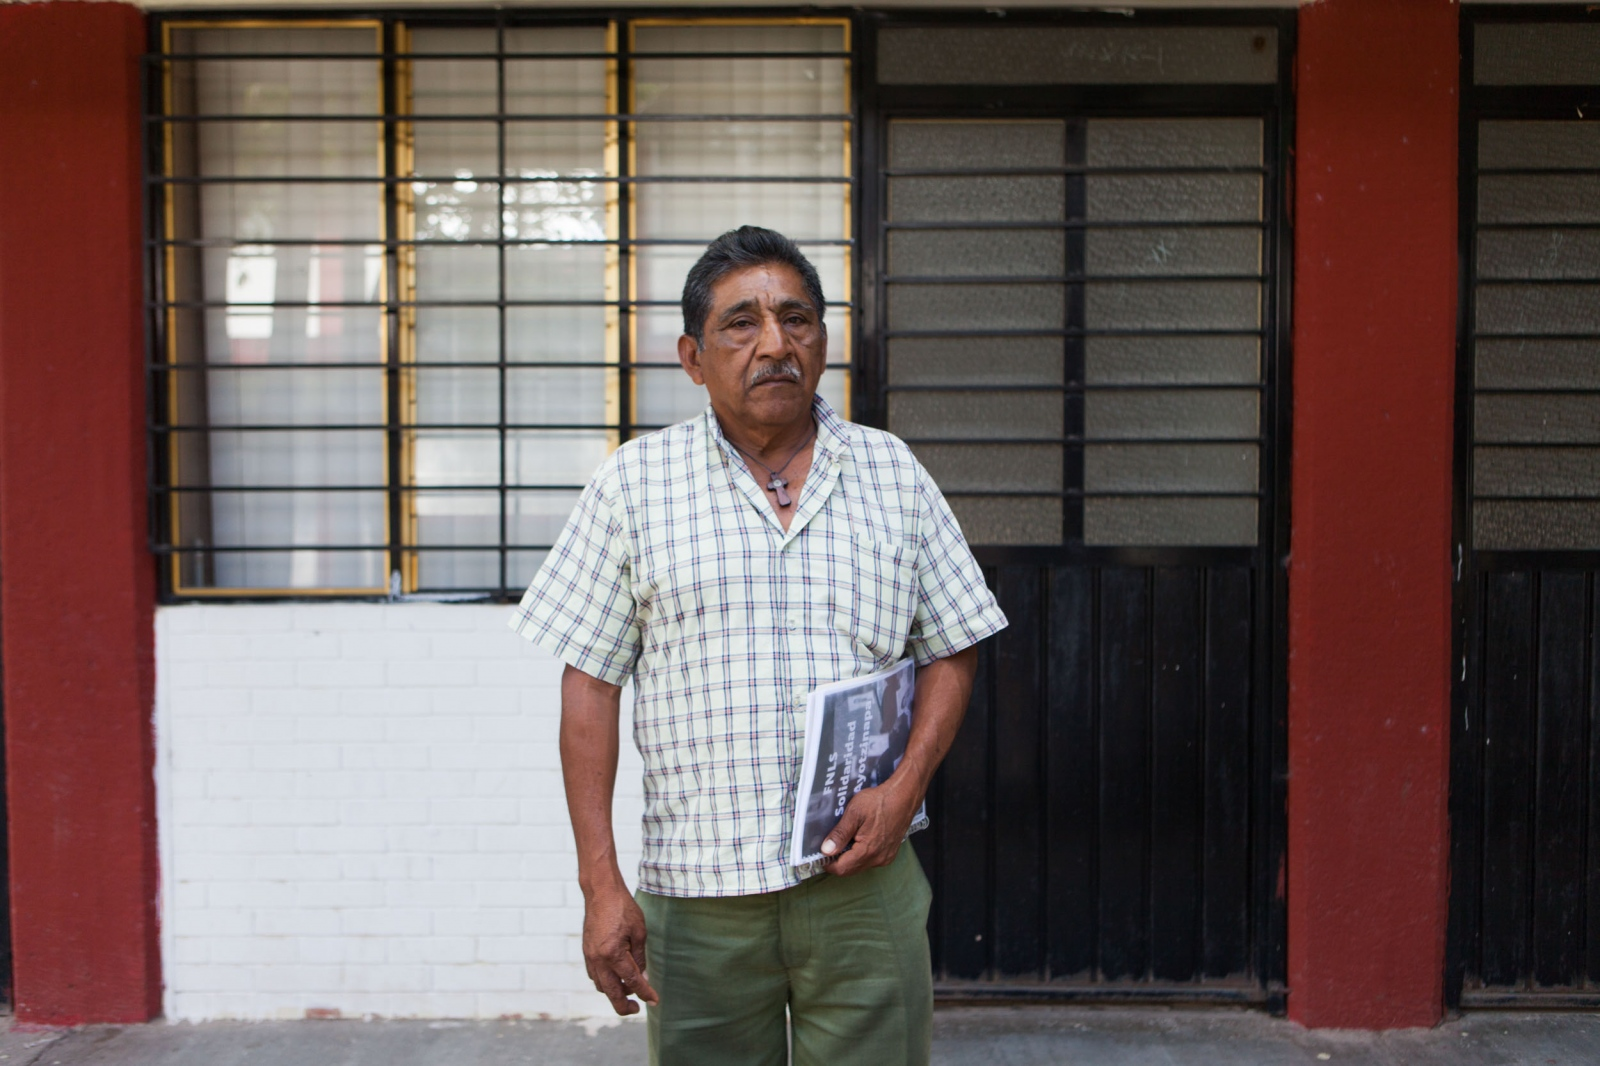 "· Don Ezequiel Mora poses in front of one of the classroom after a conversation in which he seemed enthusiastic that his son was still alive, hopeful that wherever he was, even if it was a military compound or working on the amapola fields of one of the drug traffickers, he woudl be safe. Alexander Mora, his son, was the first to be ""oficially"" found in a dumpster where supposedly the boys where incinerated, only leaving as evidence a bone belonging to him as confirmed by Argentinian experts investigating the case. Don Ezequiel, along with the other parents doubt the results. // · Don Ezequiel Mora en frente a uno de los salones de la escuela después de una platica en la que se mostraba entusiasta de que su hijo estaría vivo, contemplando la posibilidad de que estuvieran trabajando en un cuartel militar o en alguna plantación administrada por los narcos. Su hijo, Alexander Mora, fue el primero que tuvo los restos identificados via su ADN encontrado en un basurero, por el equipo argentino forense que se ha encargado de hacer la labor investigativa. Don Ezequiel, como los otros padres dudan del veredicto."